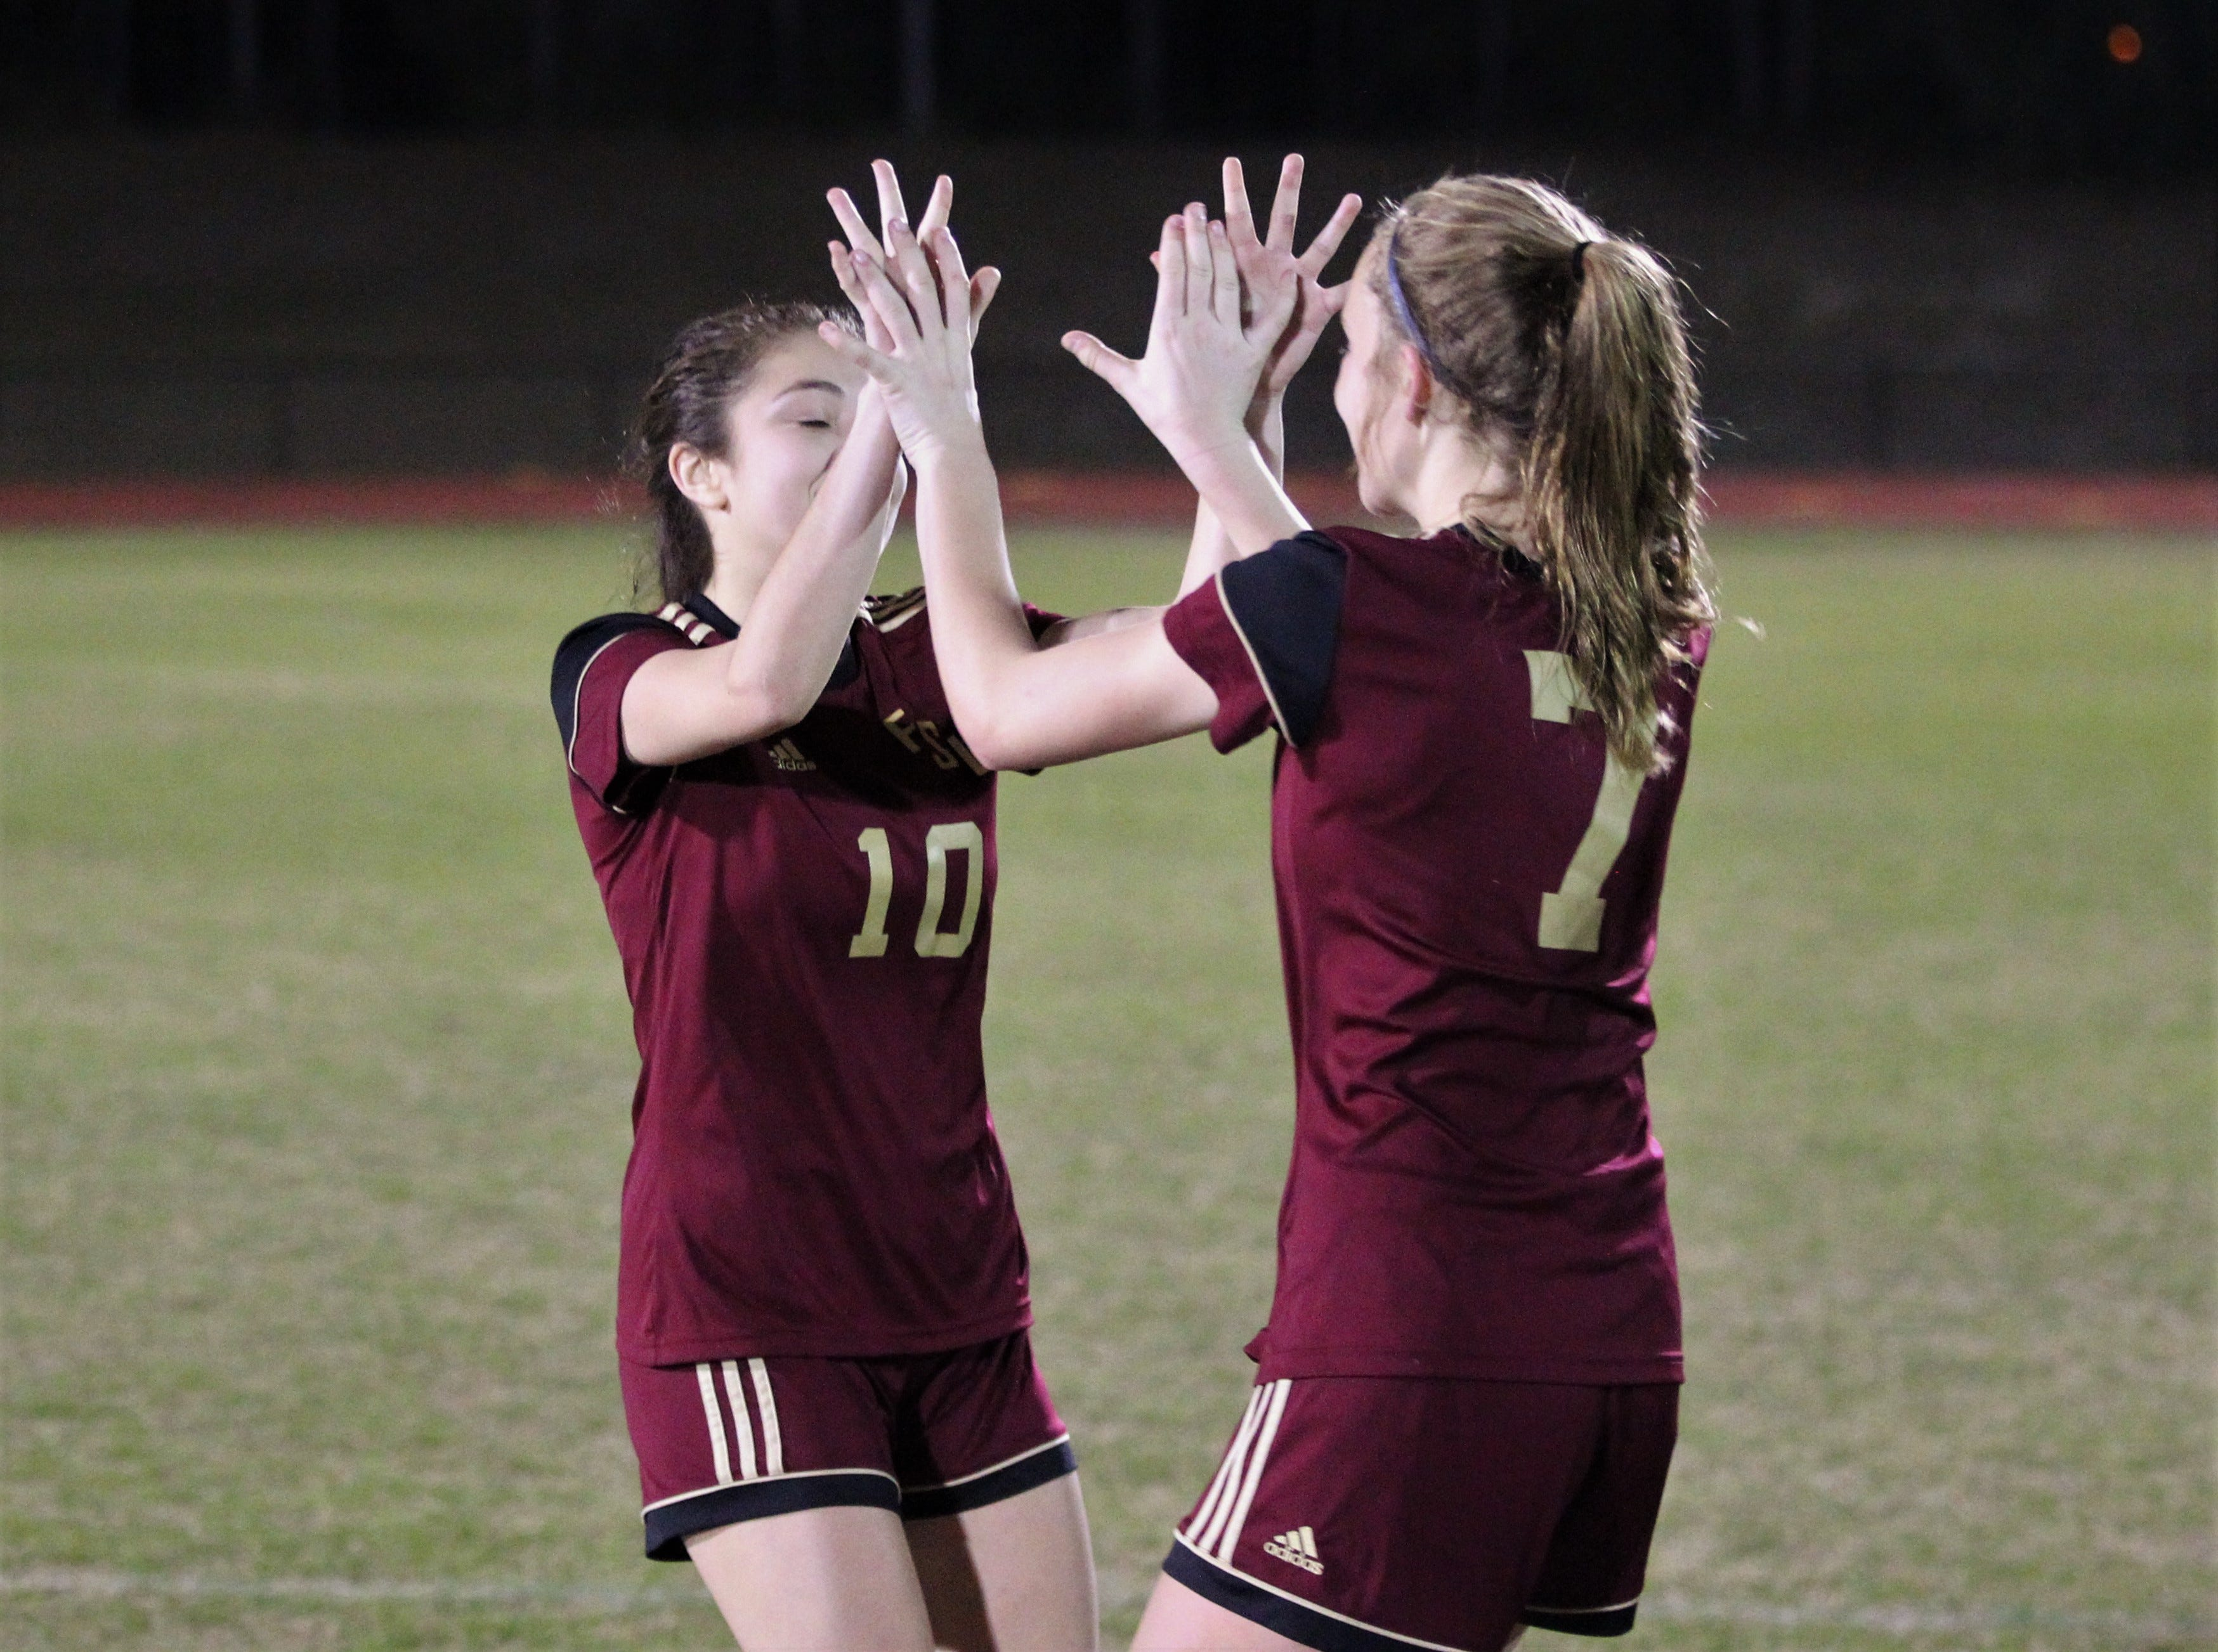 Florida High's Adriana Limburg is high-fived by Ava Dubois after making a PK as South Walton's girls soccer team edged the Seminoles 5-4 in a penalty-kick shootout during a Region 1-2A semifinal on Feb. 8, 2019.